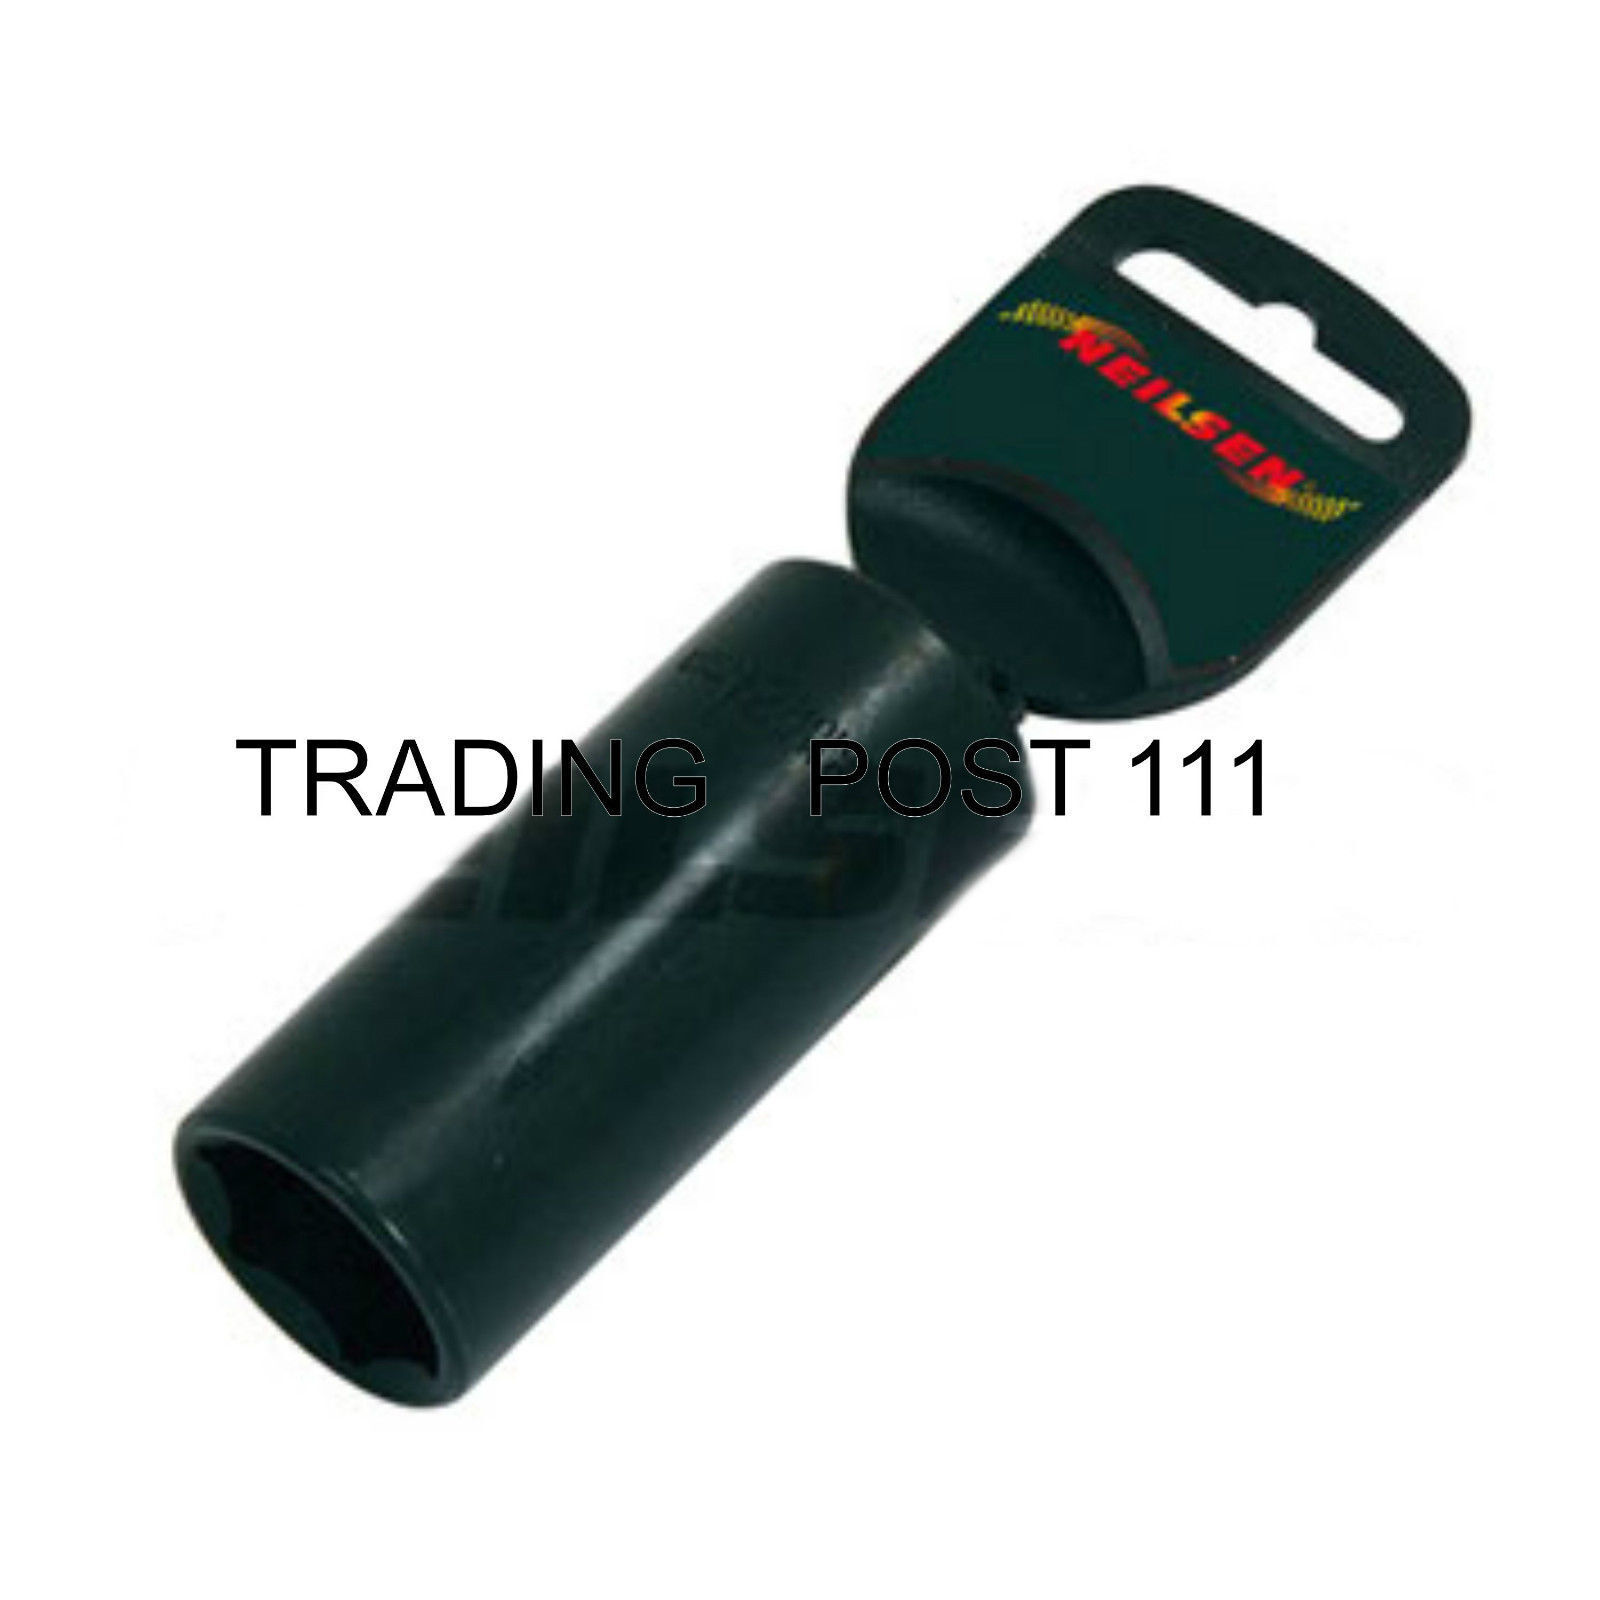 """Neilsen 27mm Deep Impact Socket 1/2"""" Square Drive Air Hand Wrench  3176"""